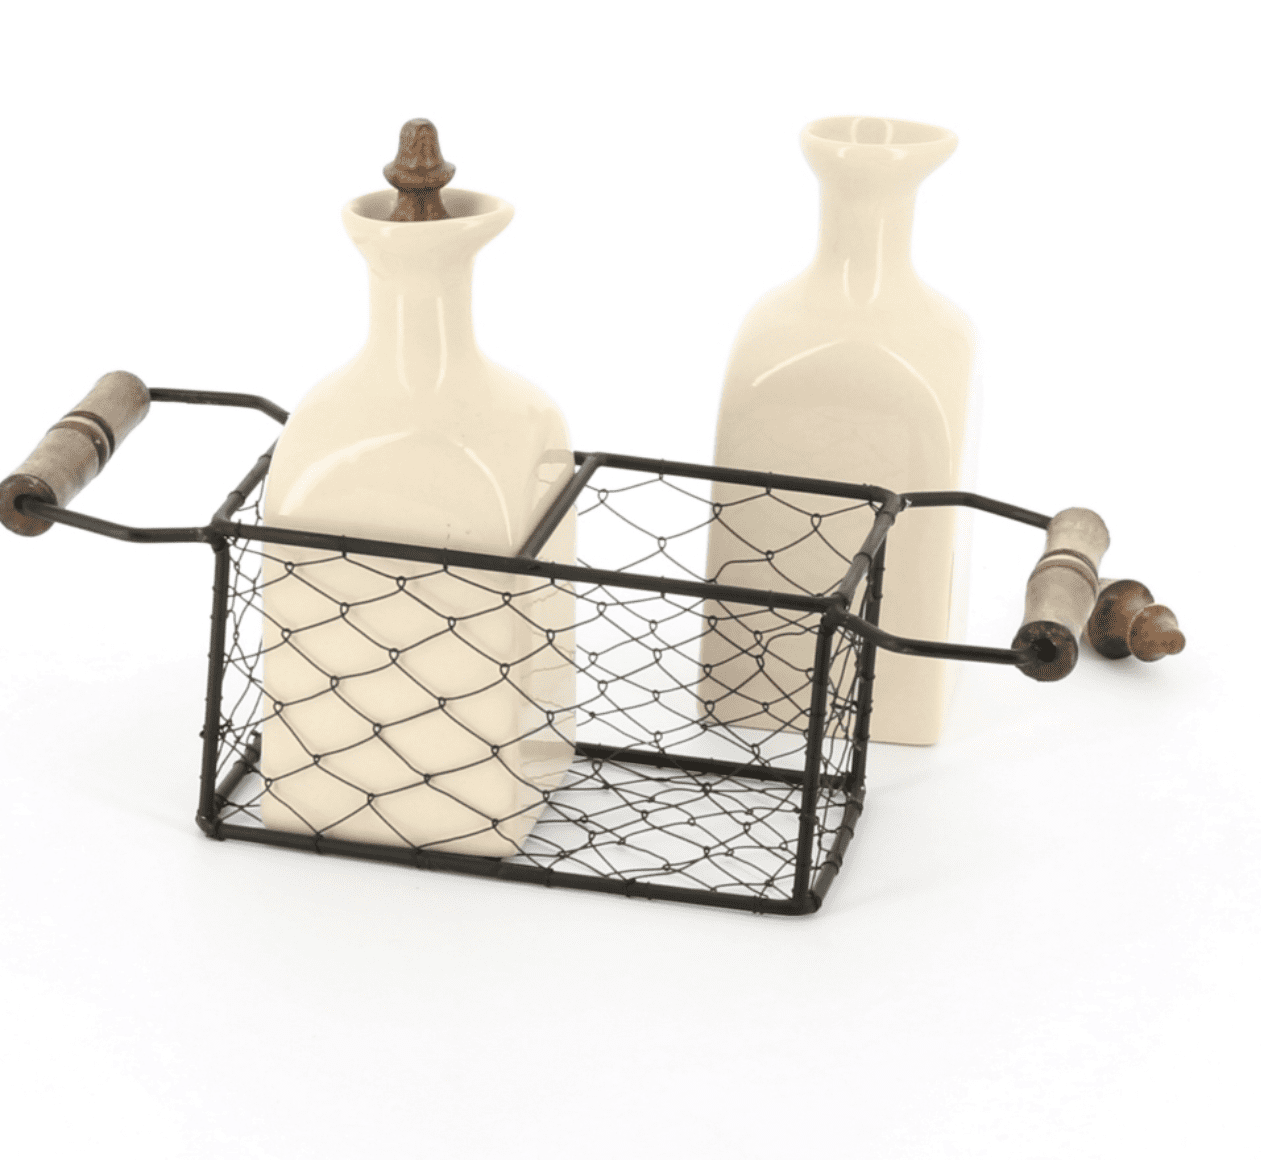 Country kitchen oil and vinegar ceramic set in a wire 2 handled carrier with wooden knobs, back view